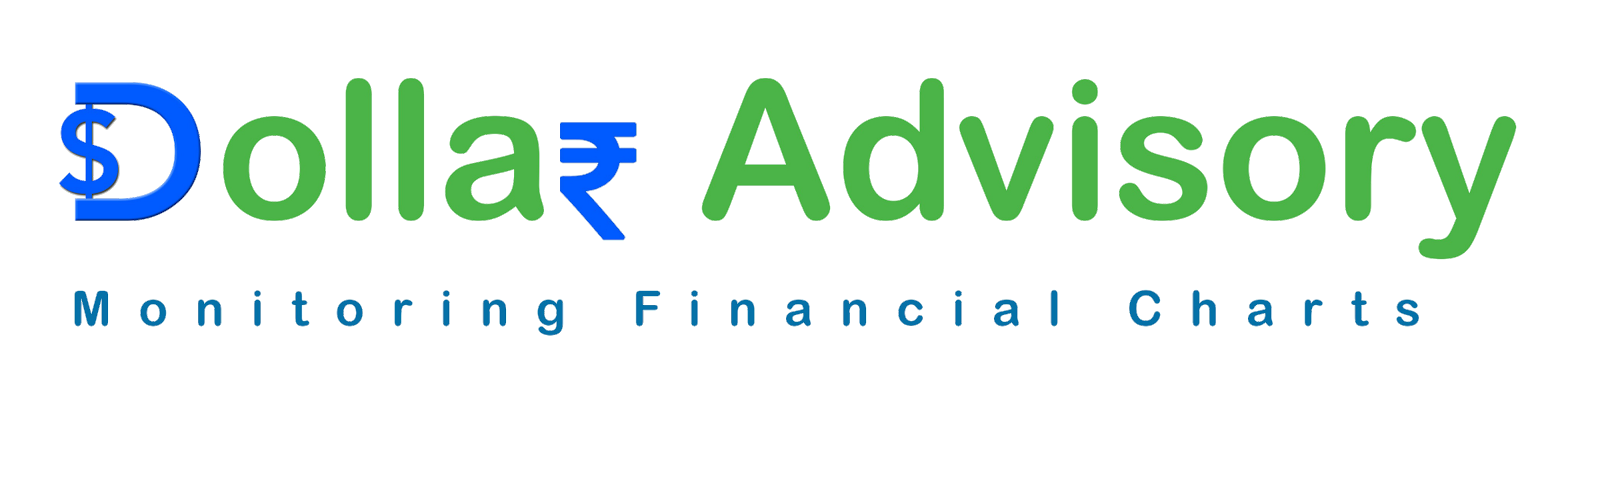 Dollar Advisory Financial Services